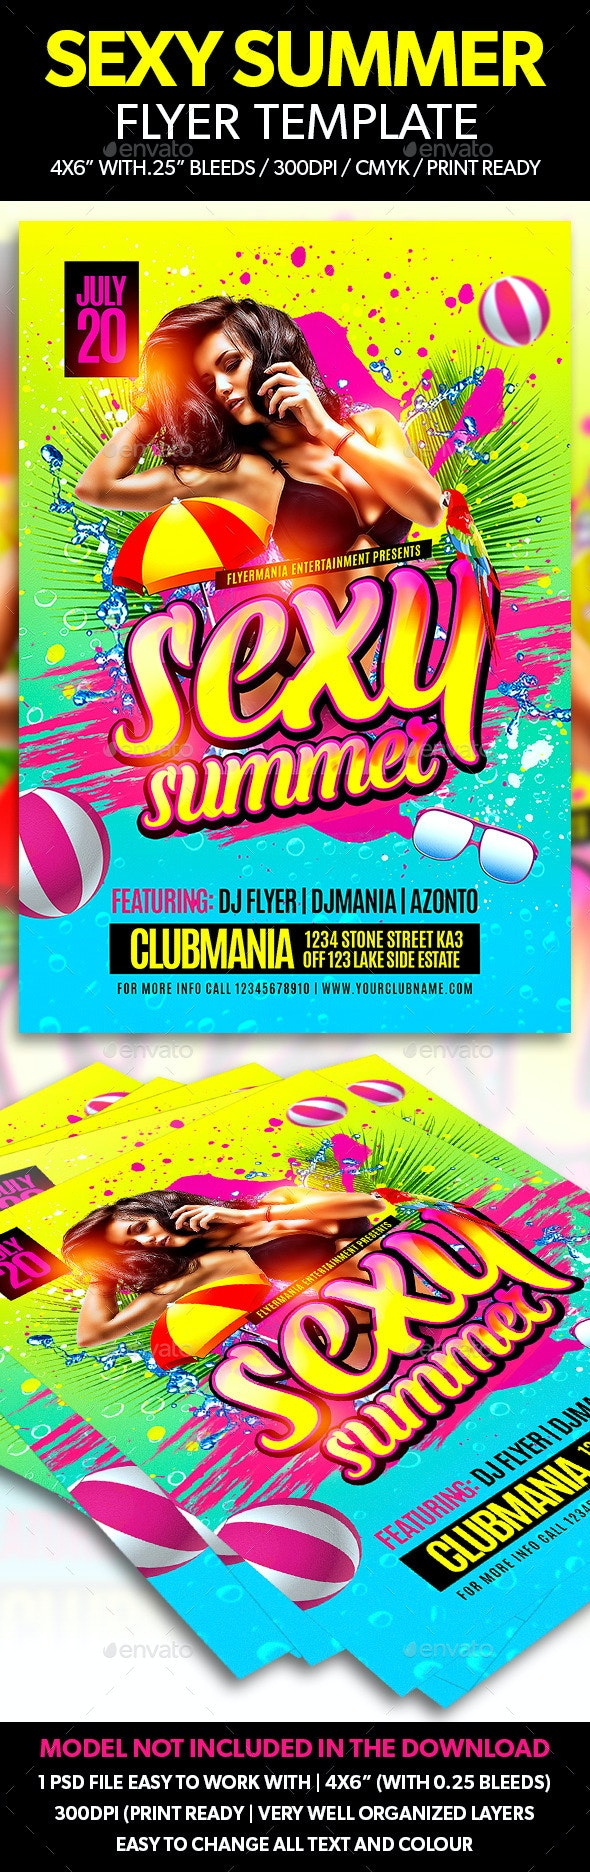 Sexy Summer Flyer Template - Clubs & Parties Events